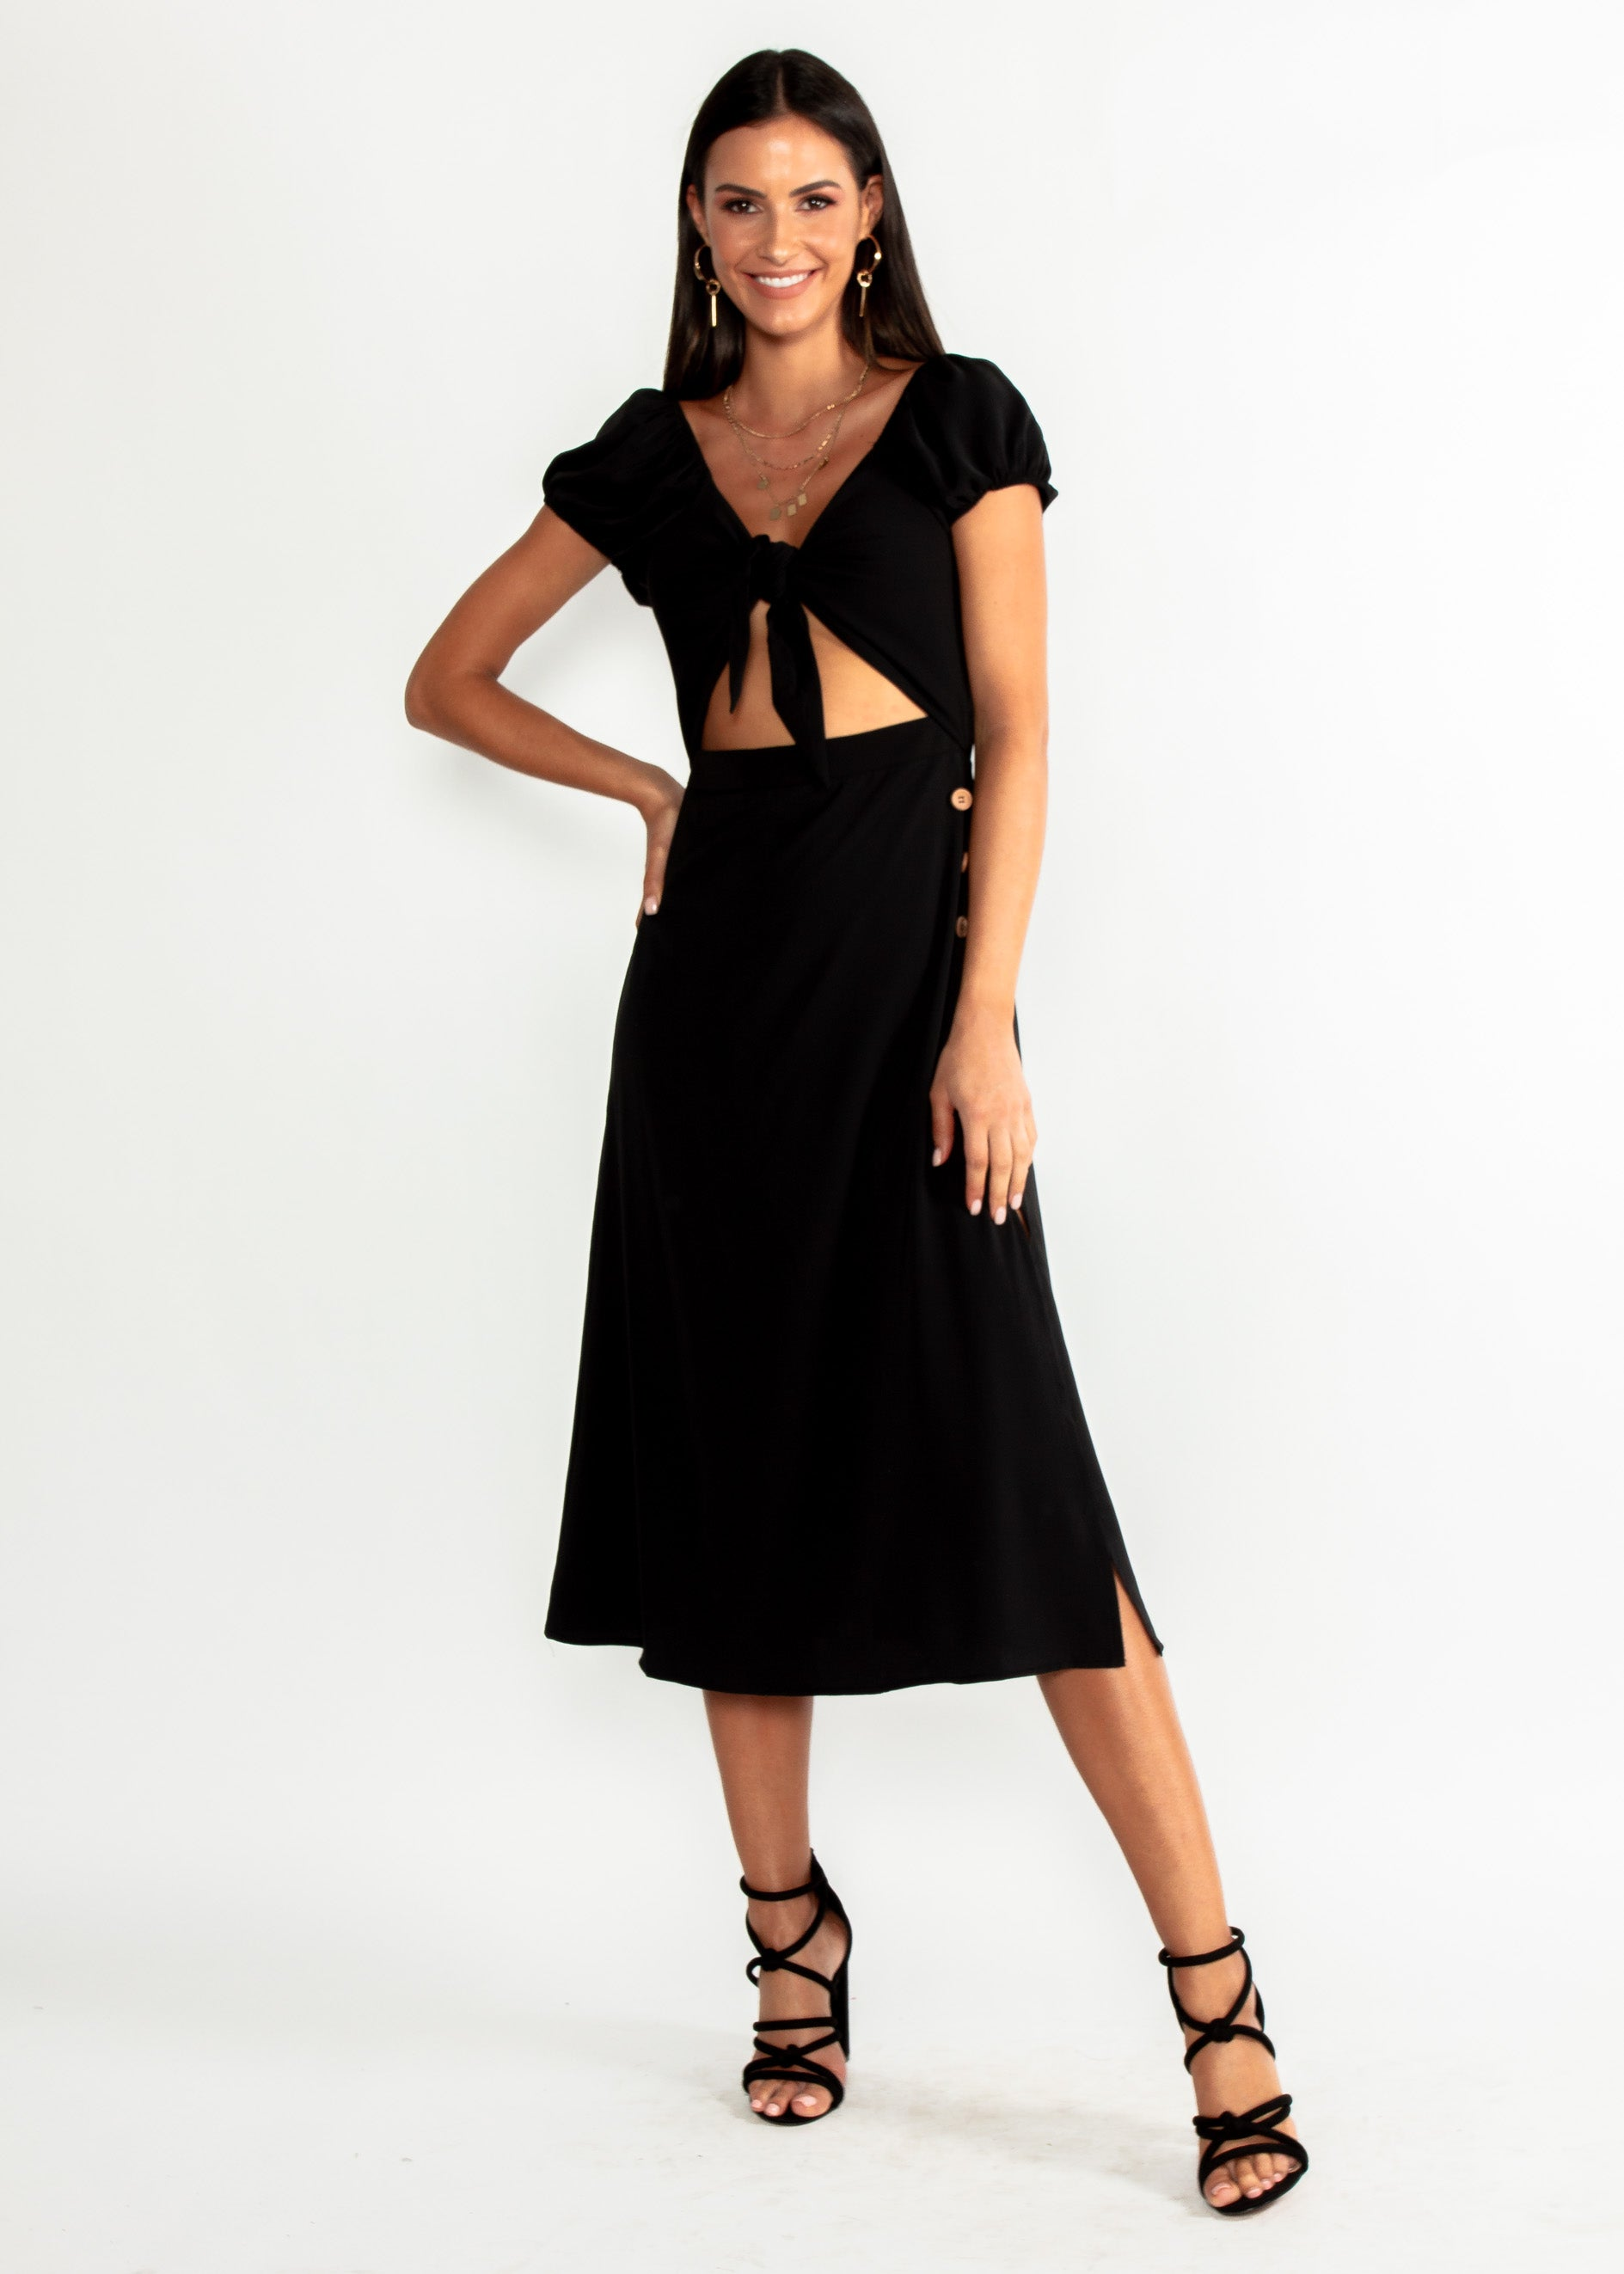 Free Fall Tie Midi Dress - Black